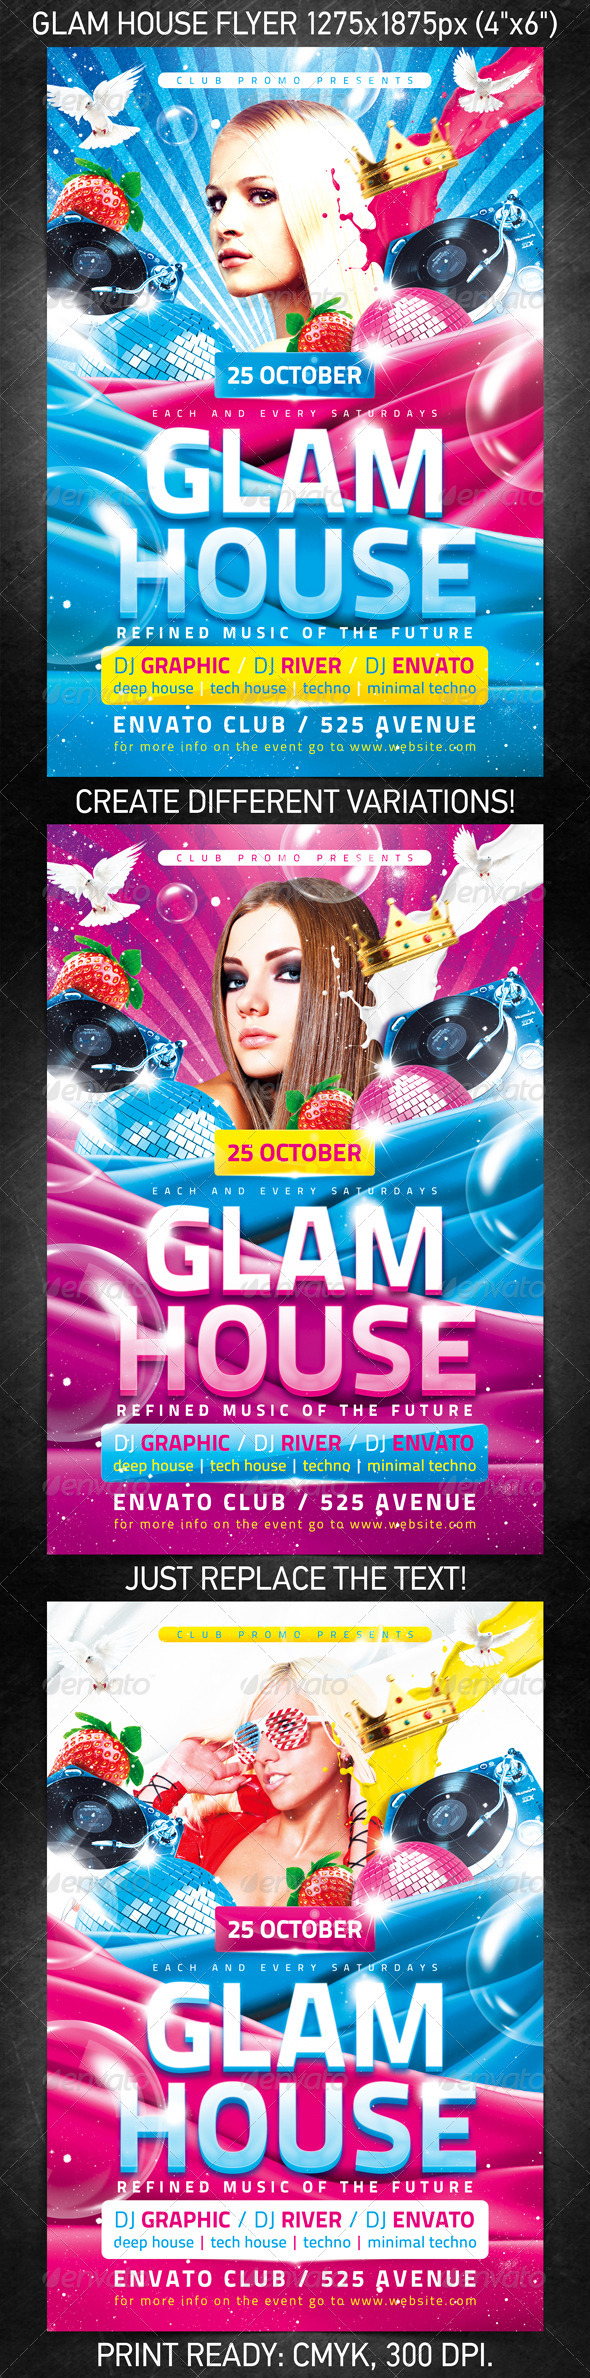 Glam House Flyer - Clubs & Parties Events